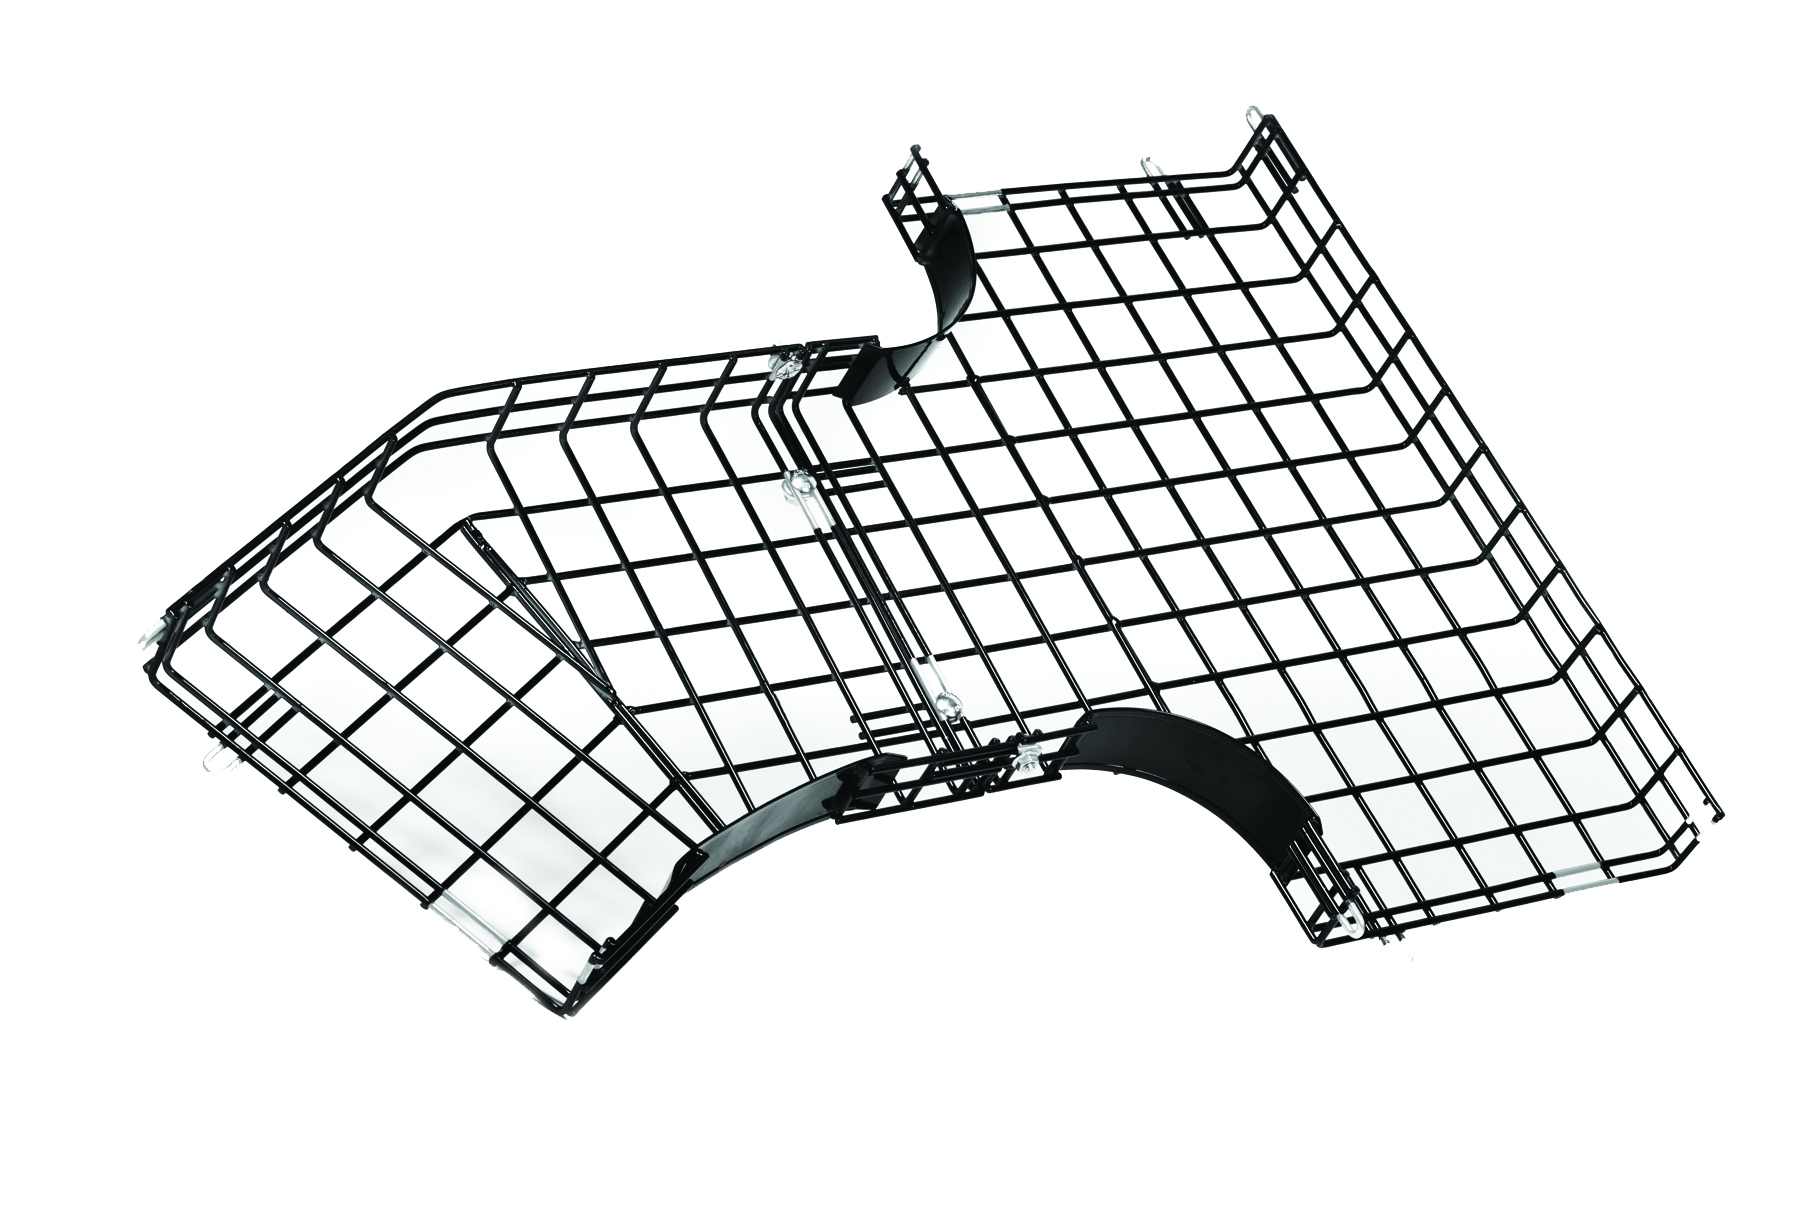 Quickturn Basket Tray System Reduces Installation Time